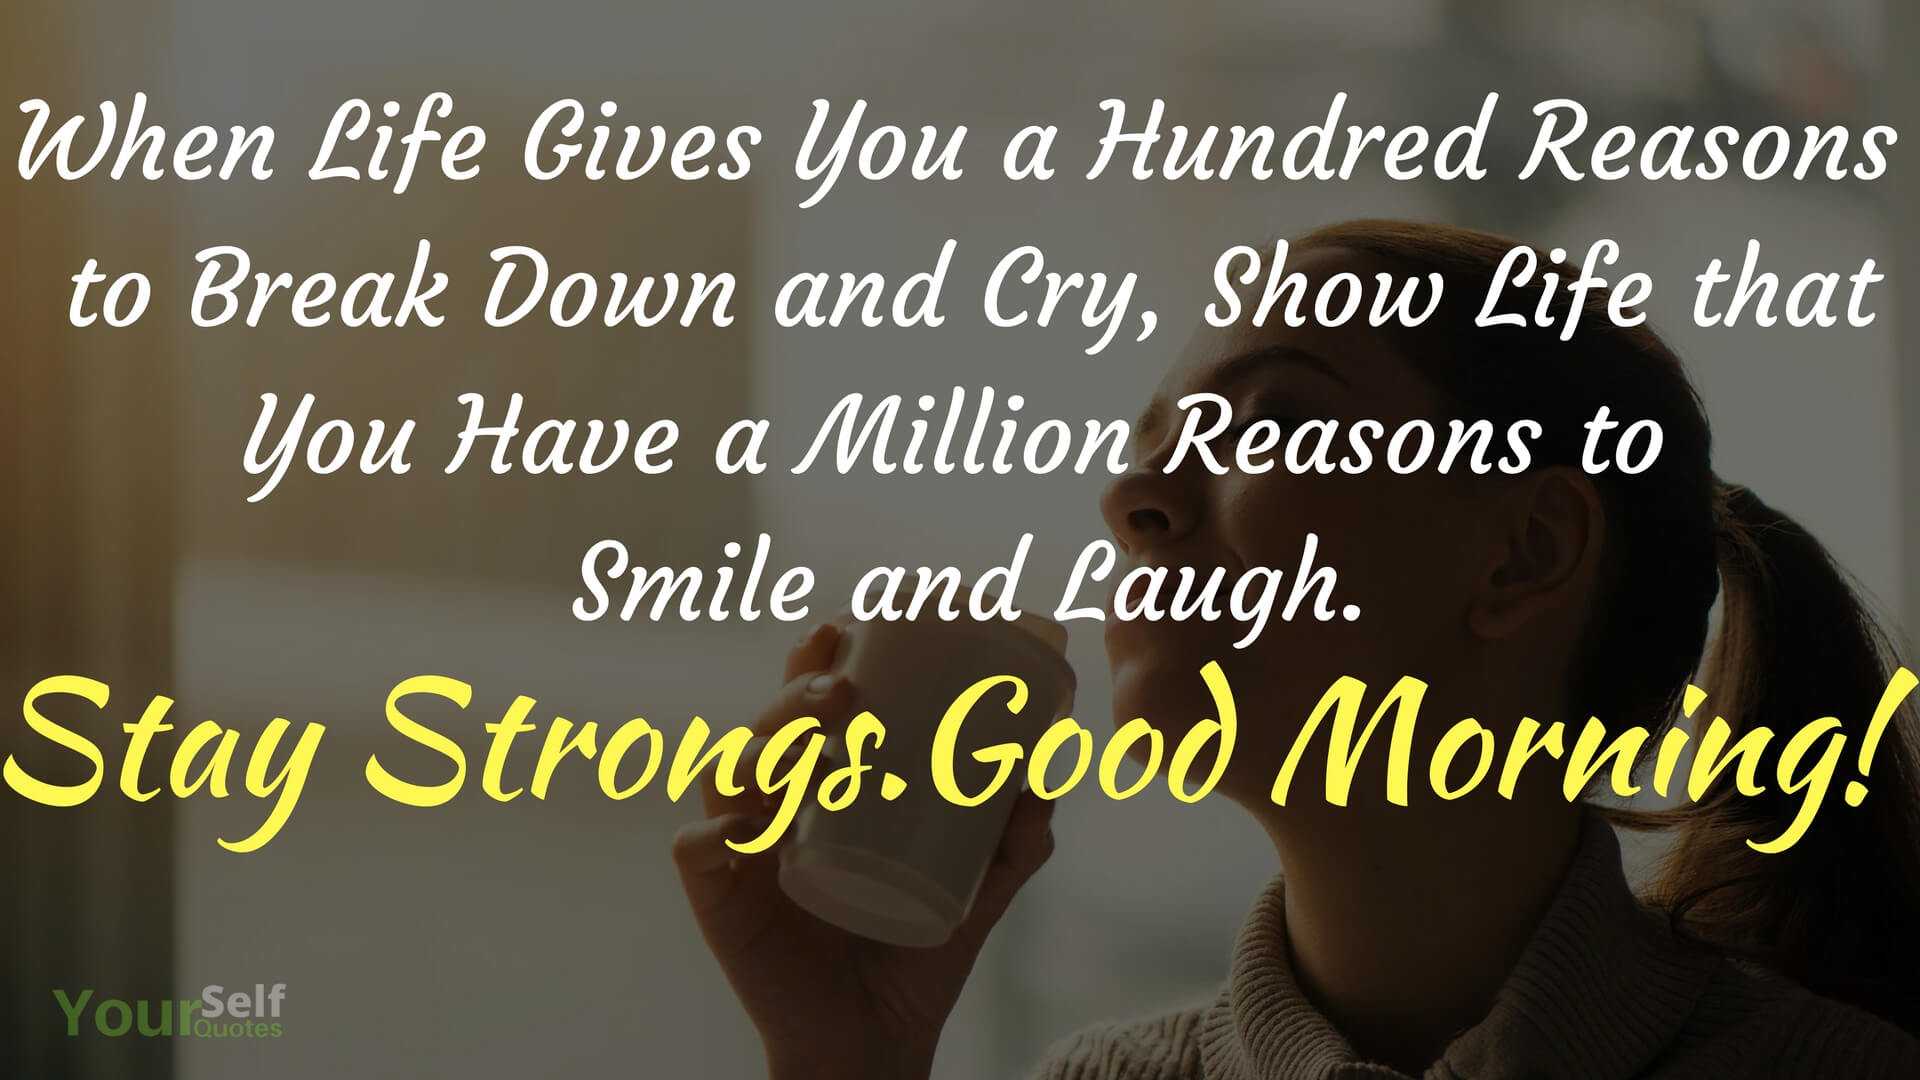 Good Morning Wednesday Image - Wednesday Good Morning Images With Quotes , HD Wallpaper & Backgrounds